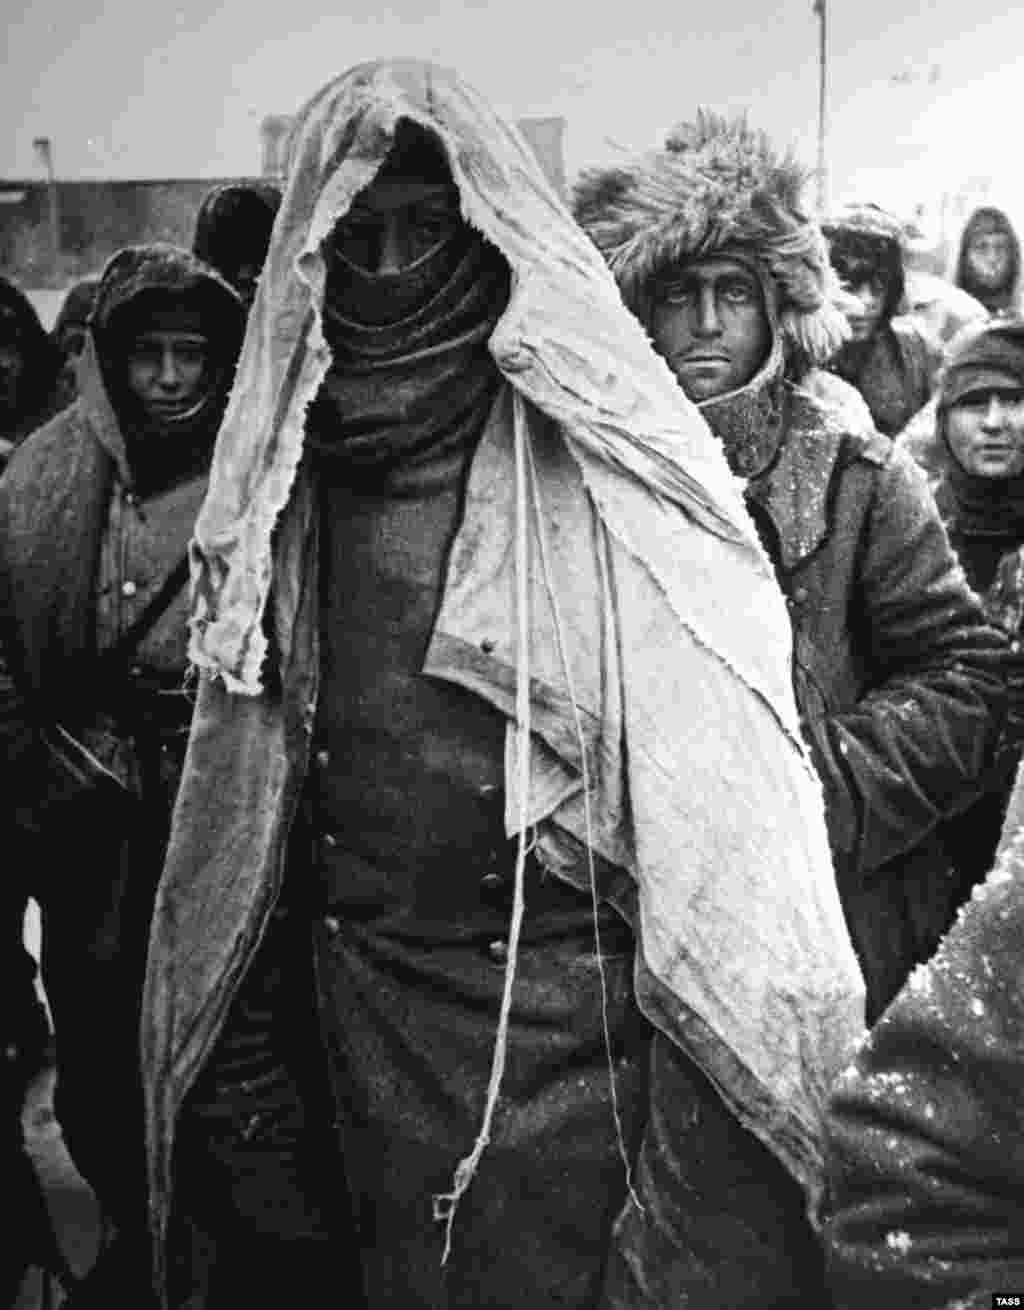 With supplies running out, most Germans were in an exhausted and emaciated condition by the time the fighting ended.